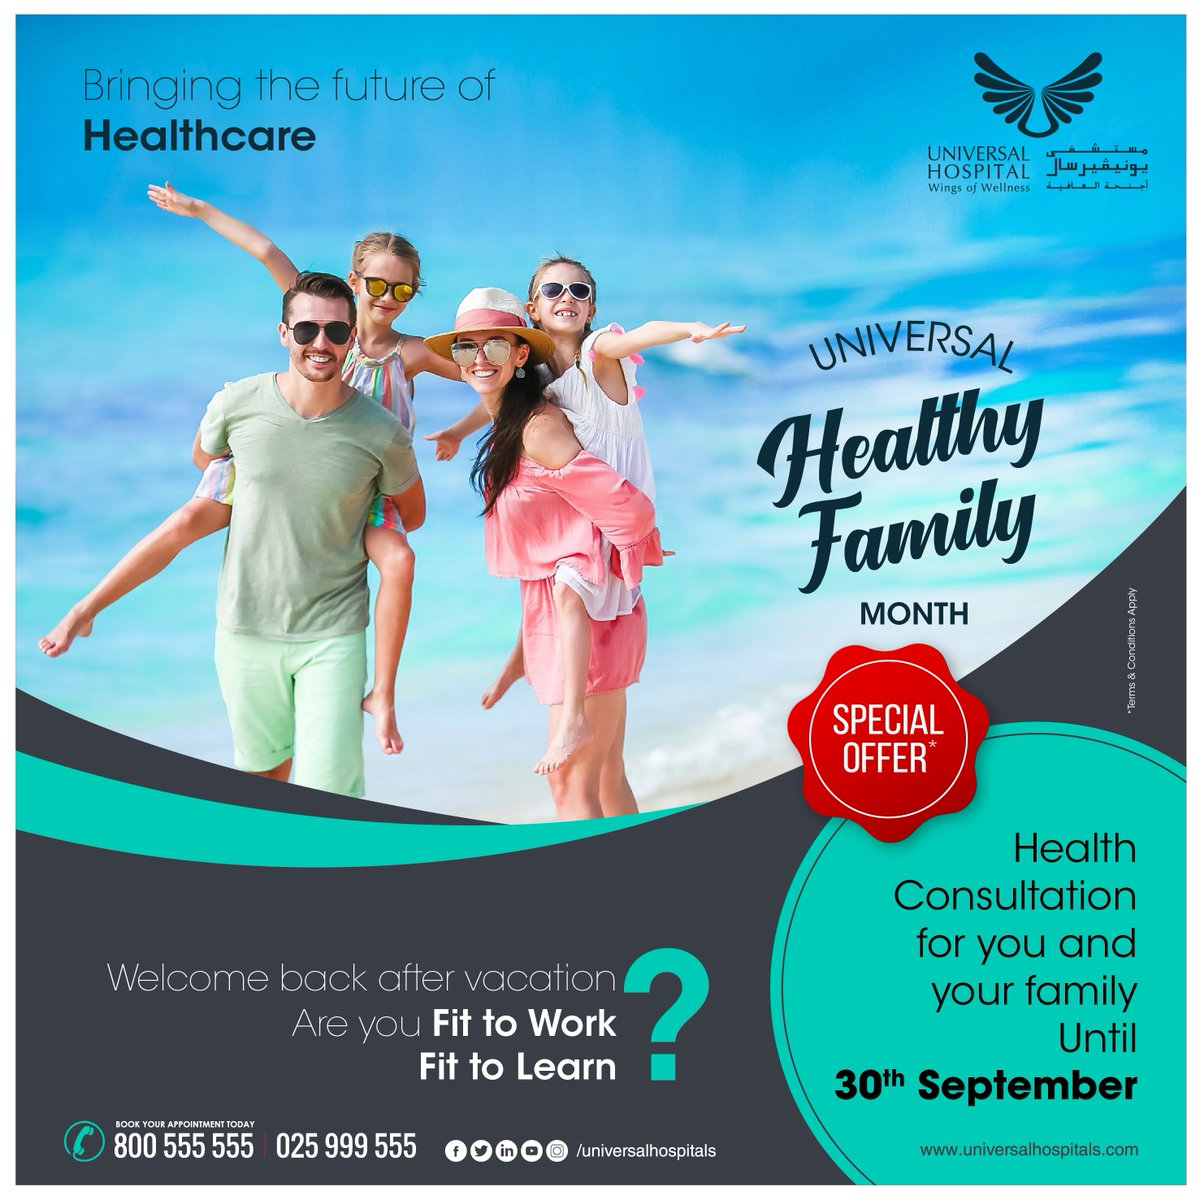 """Universal Healthy Family Month - At Universal Hospital, YOU are our priority.   Welcome back after vacation. Are you Fit to Work? Fit to Learn? """"Universal Healthy Family"""" which aims to provide healthcare service available to everyone.  #healthyfamily #healthyou #Health #screening"""